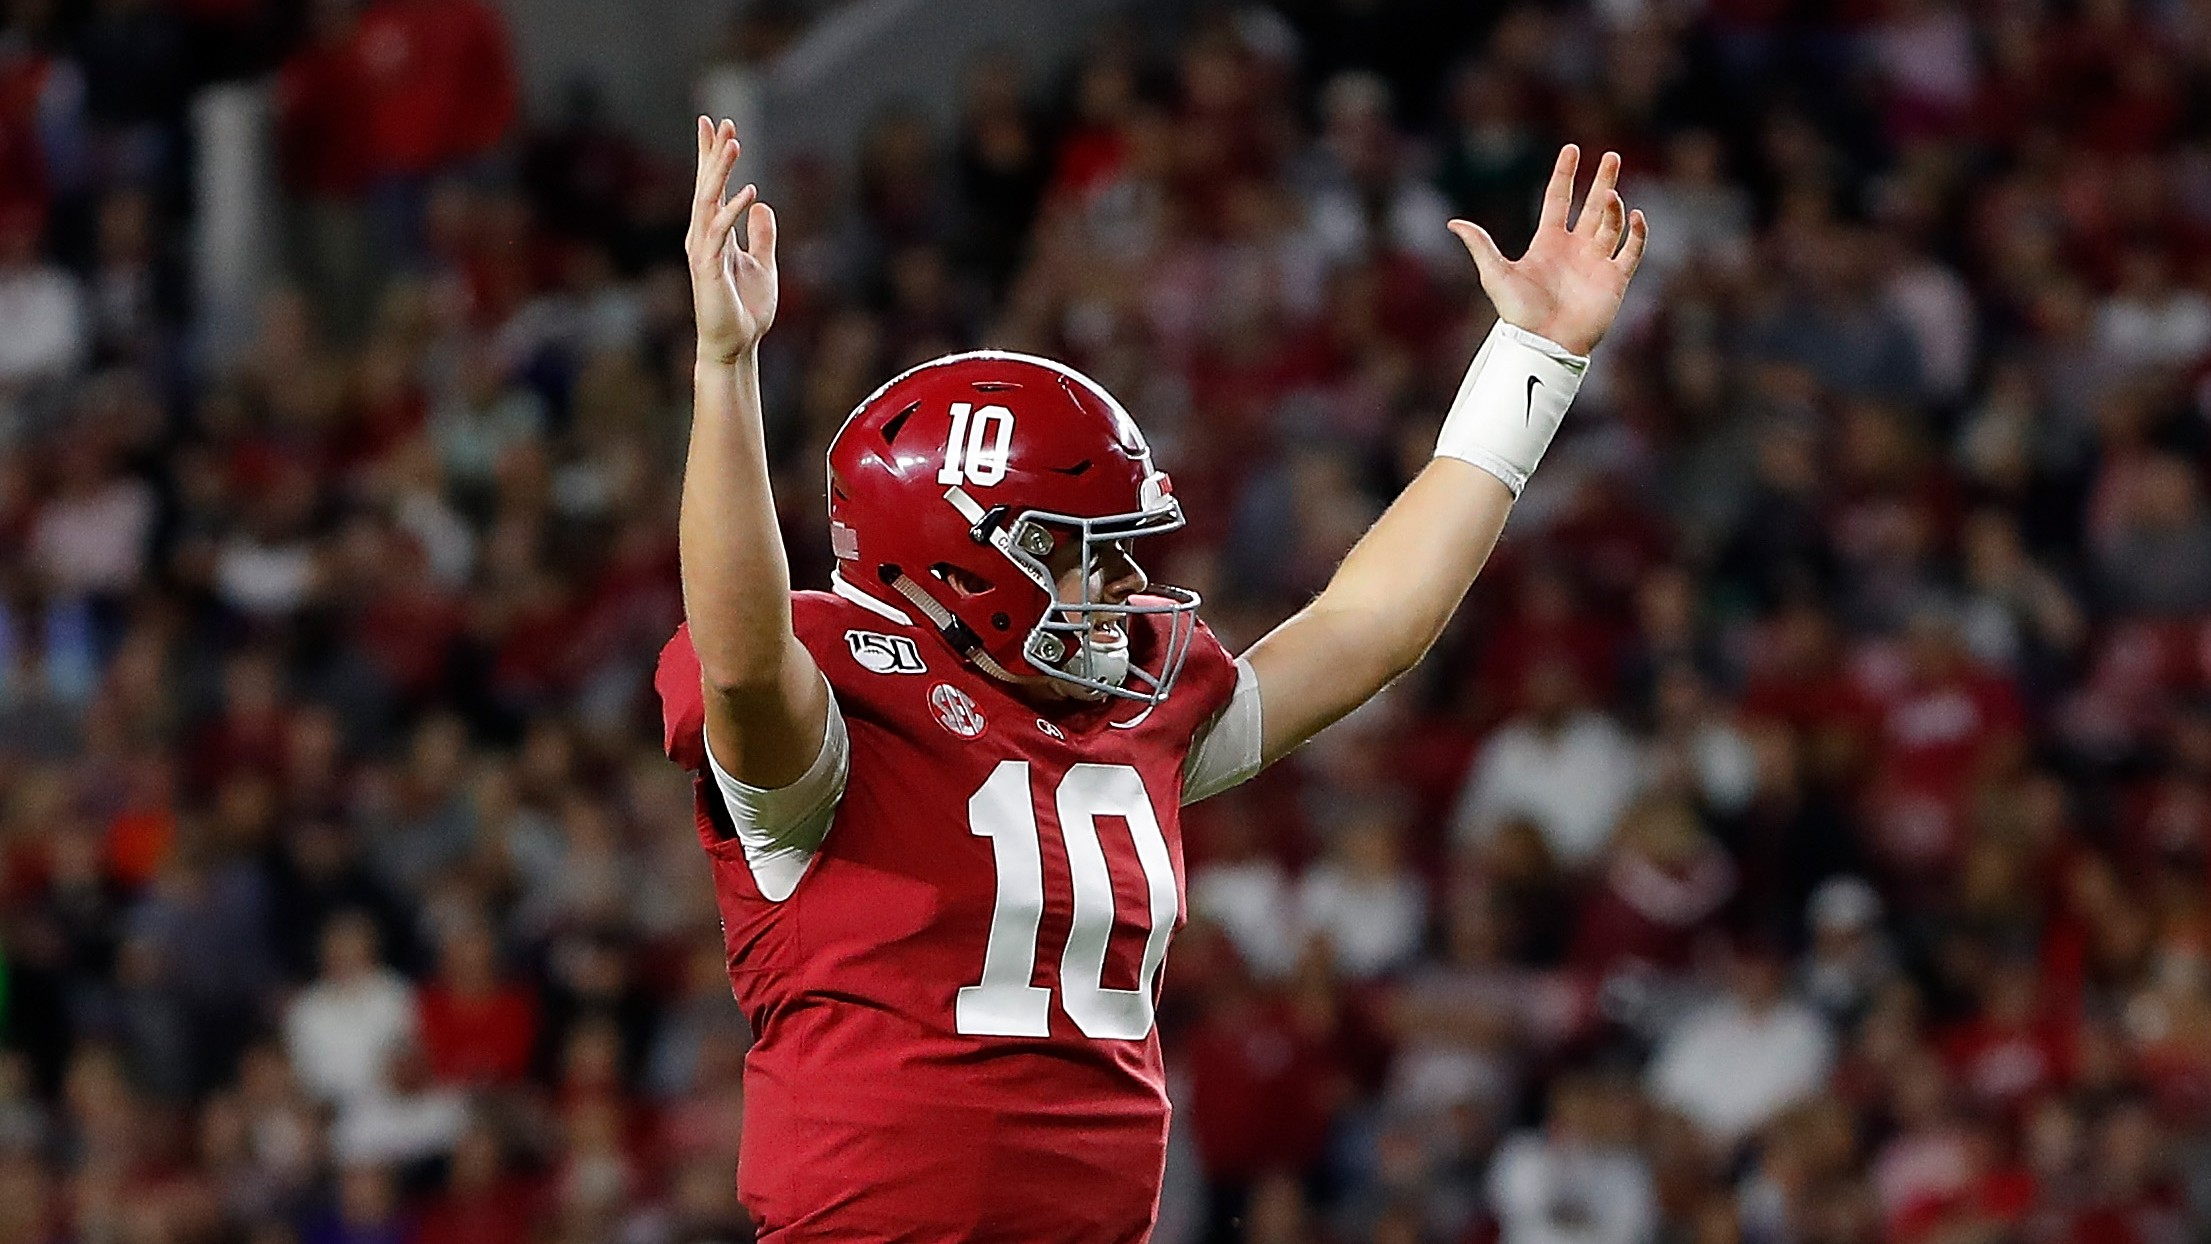 Best College Football Week 12 Promos: Bet Any Team at +50 on Spread, More! article feature image